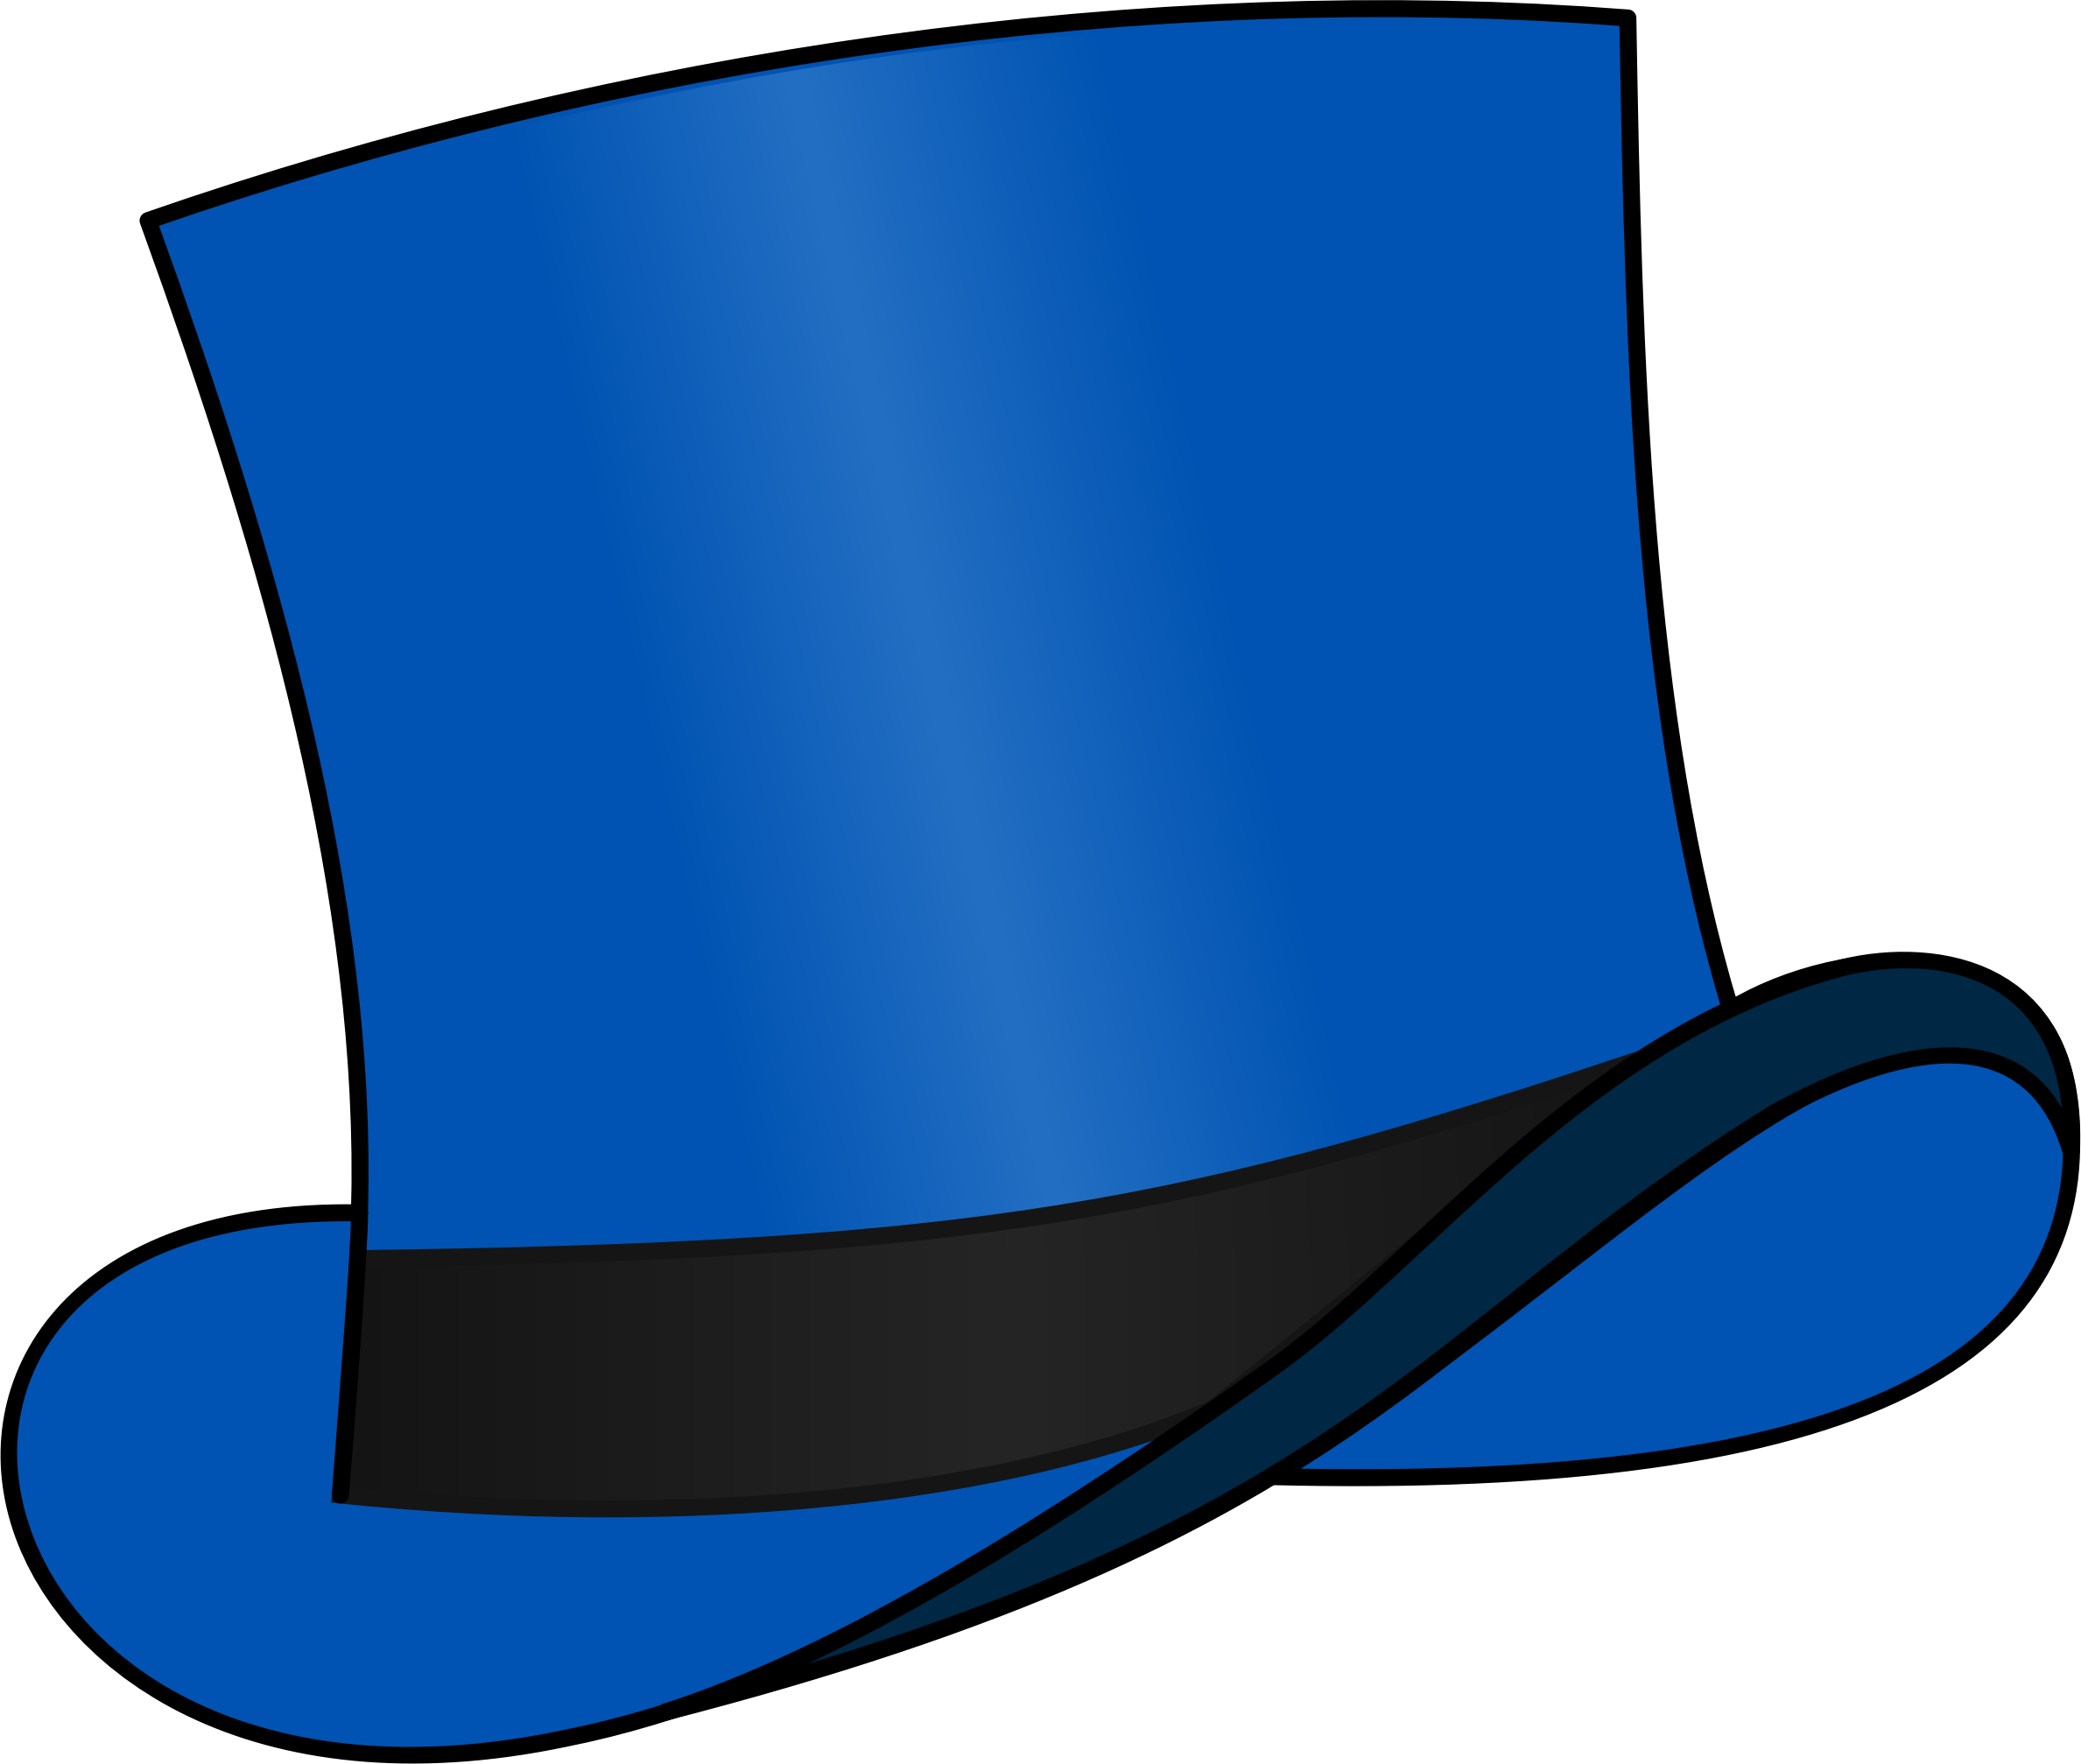 Blue hat png. Top icons free and